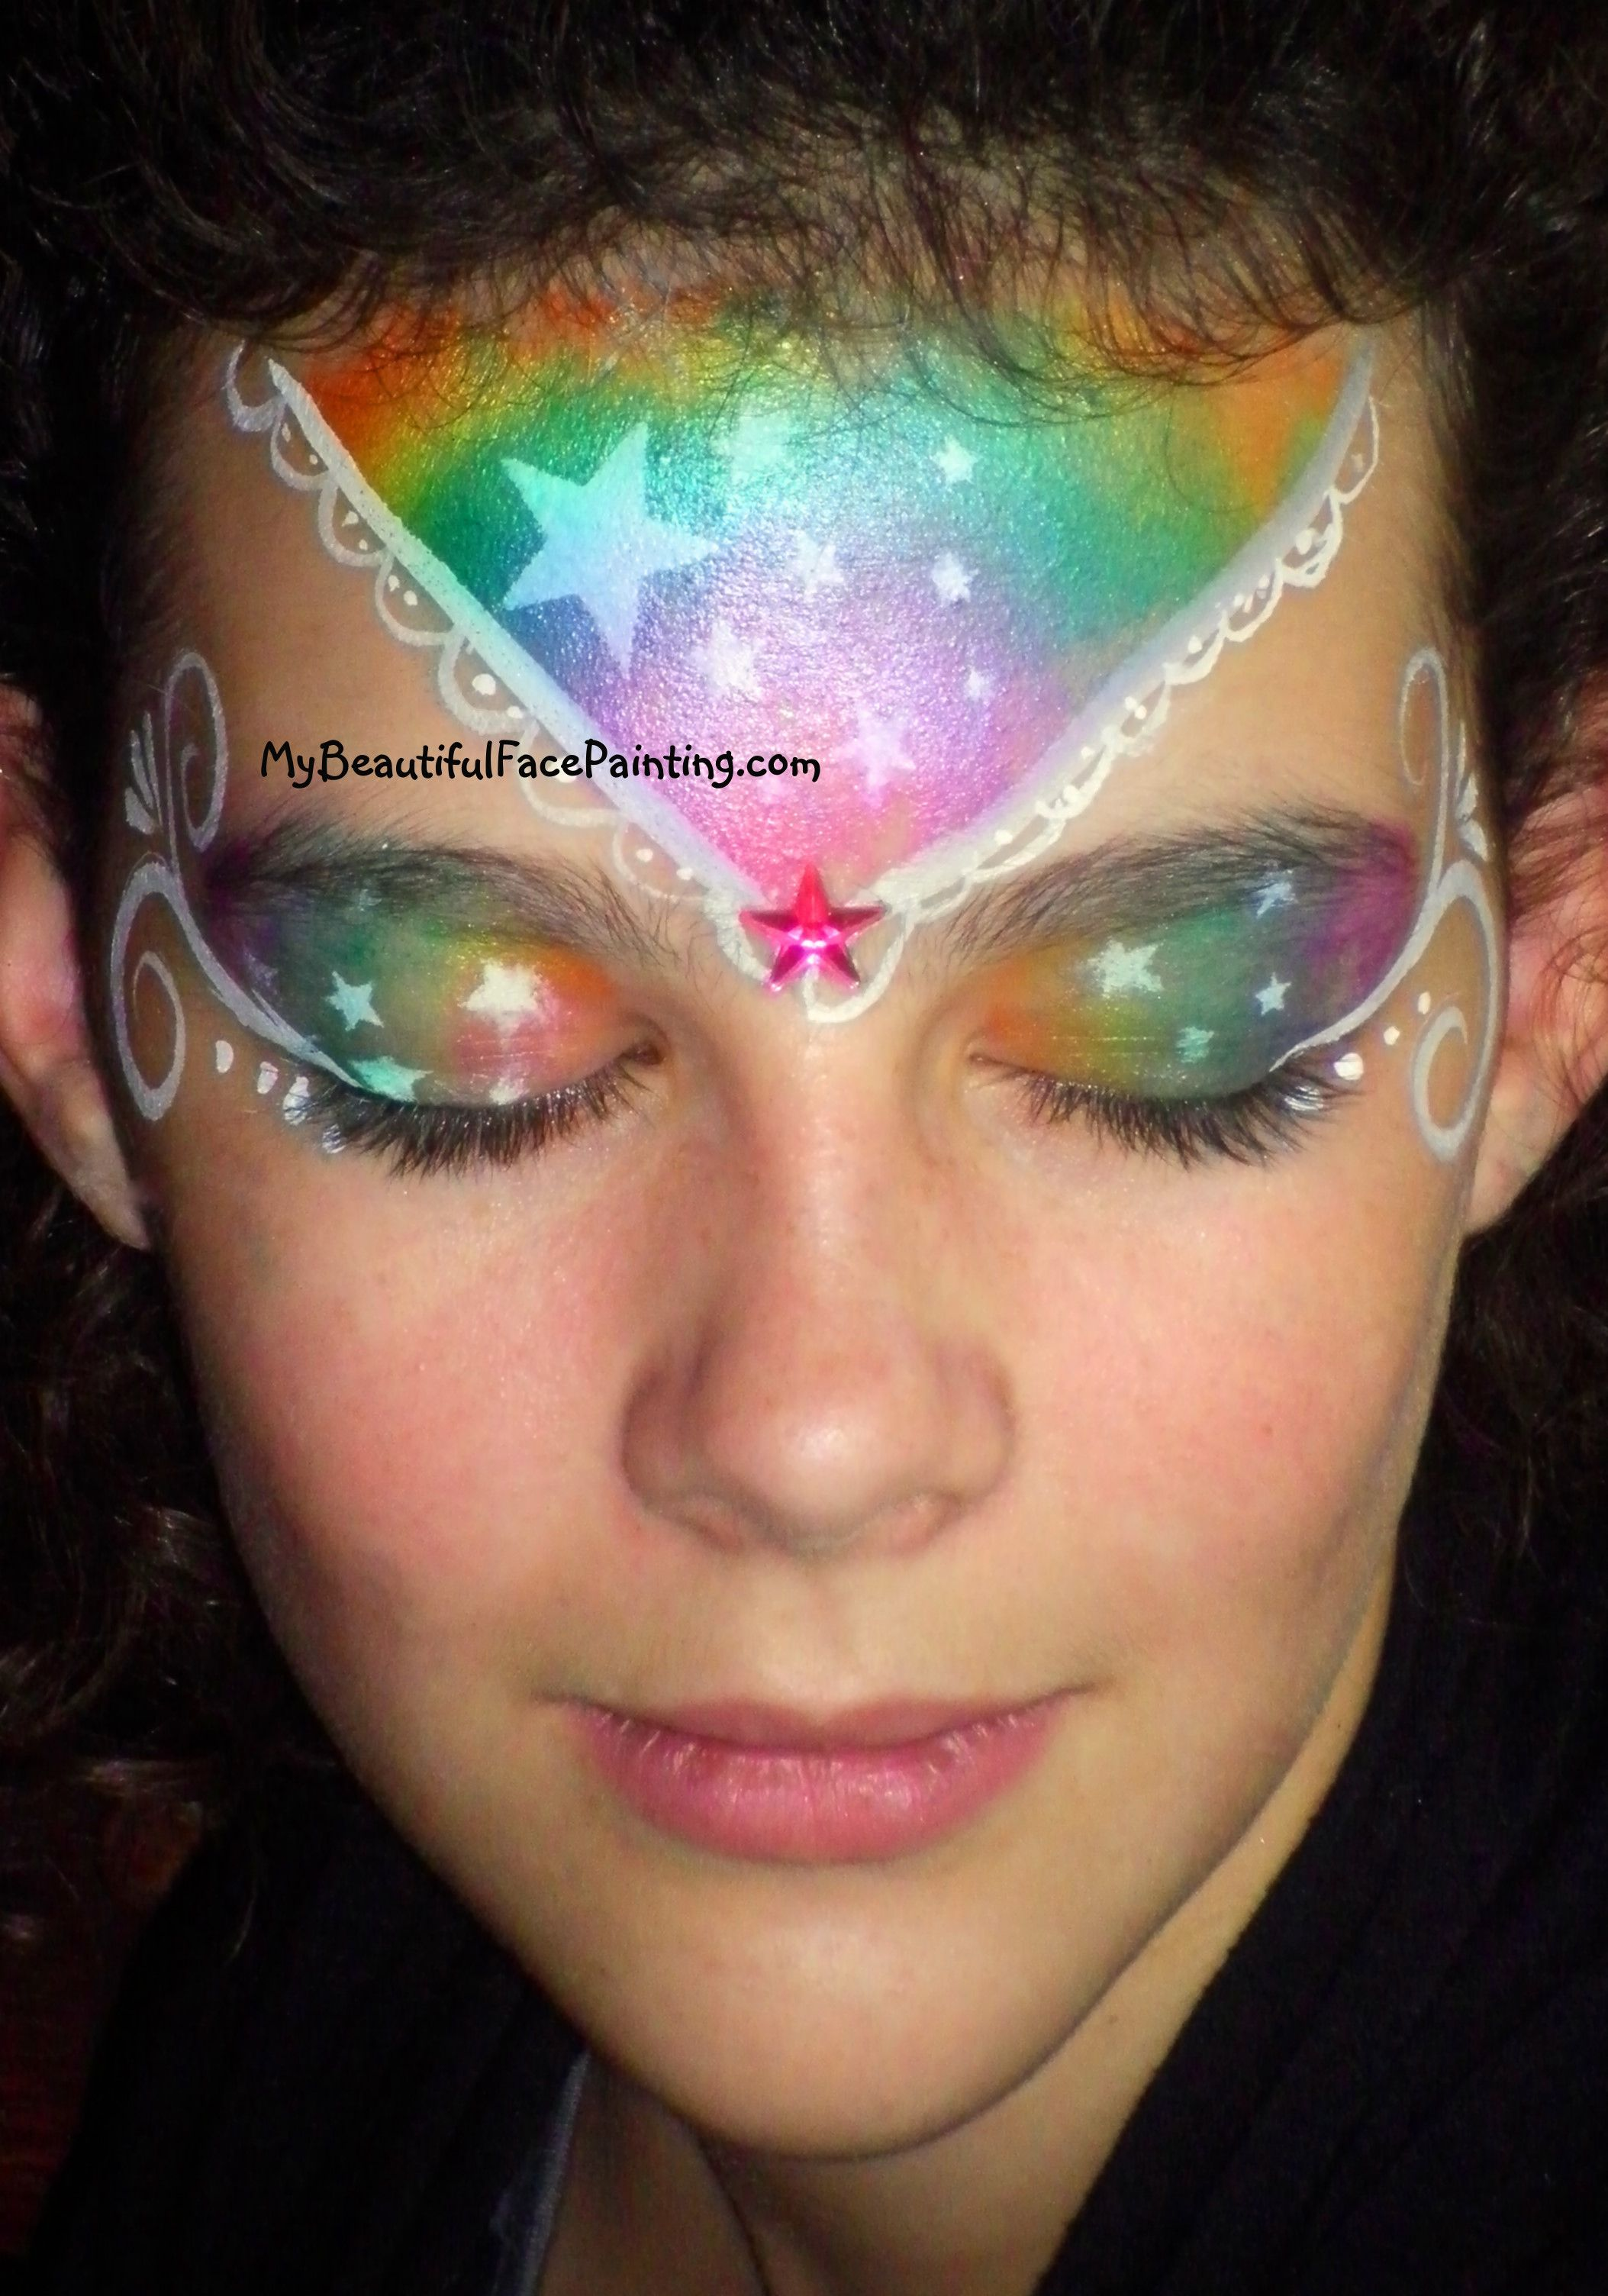 Rainbow Dramatic Crown With Stars Face Paint Face Painting Designs Face Painting Easy Face Paint